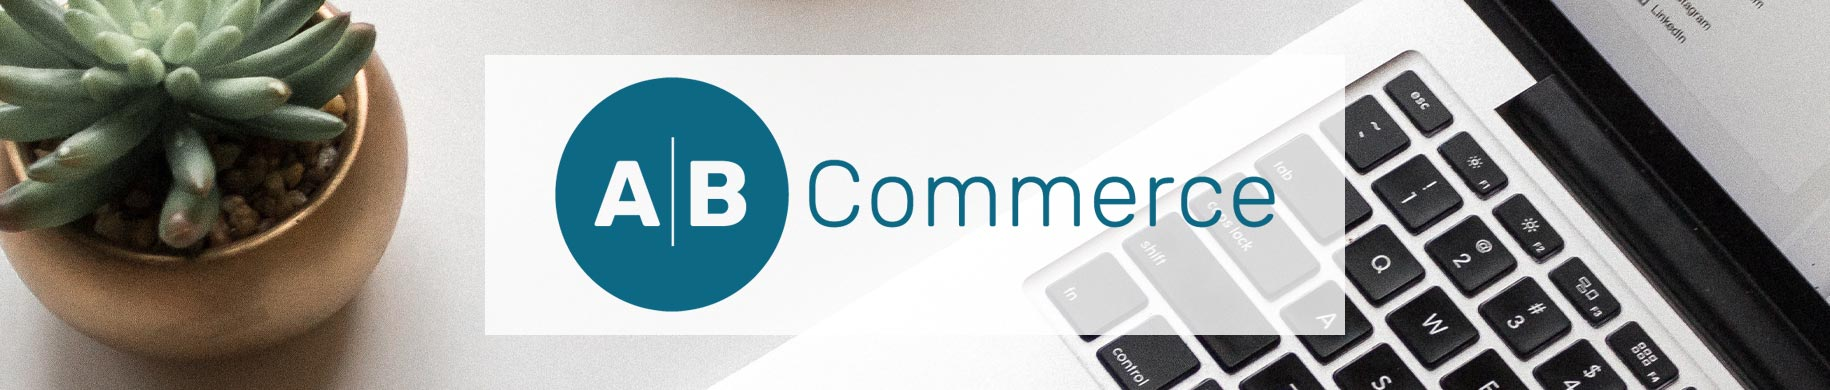 AB Commerce solution